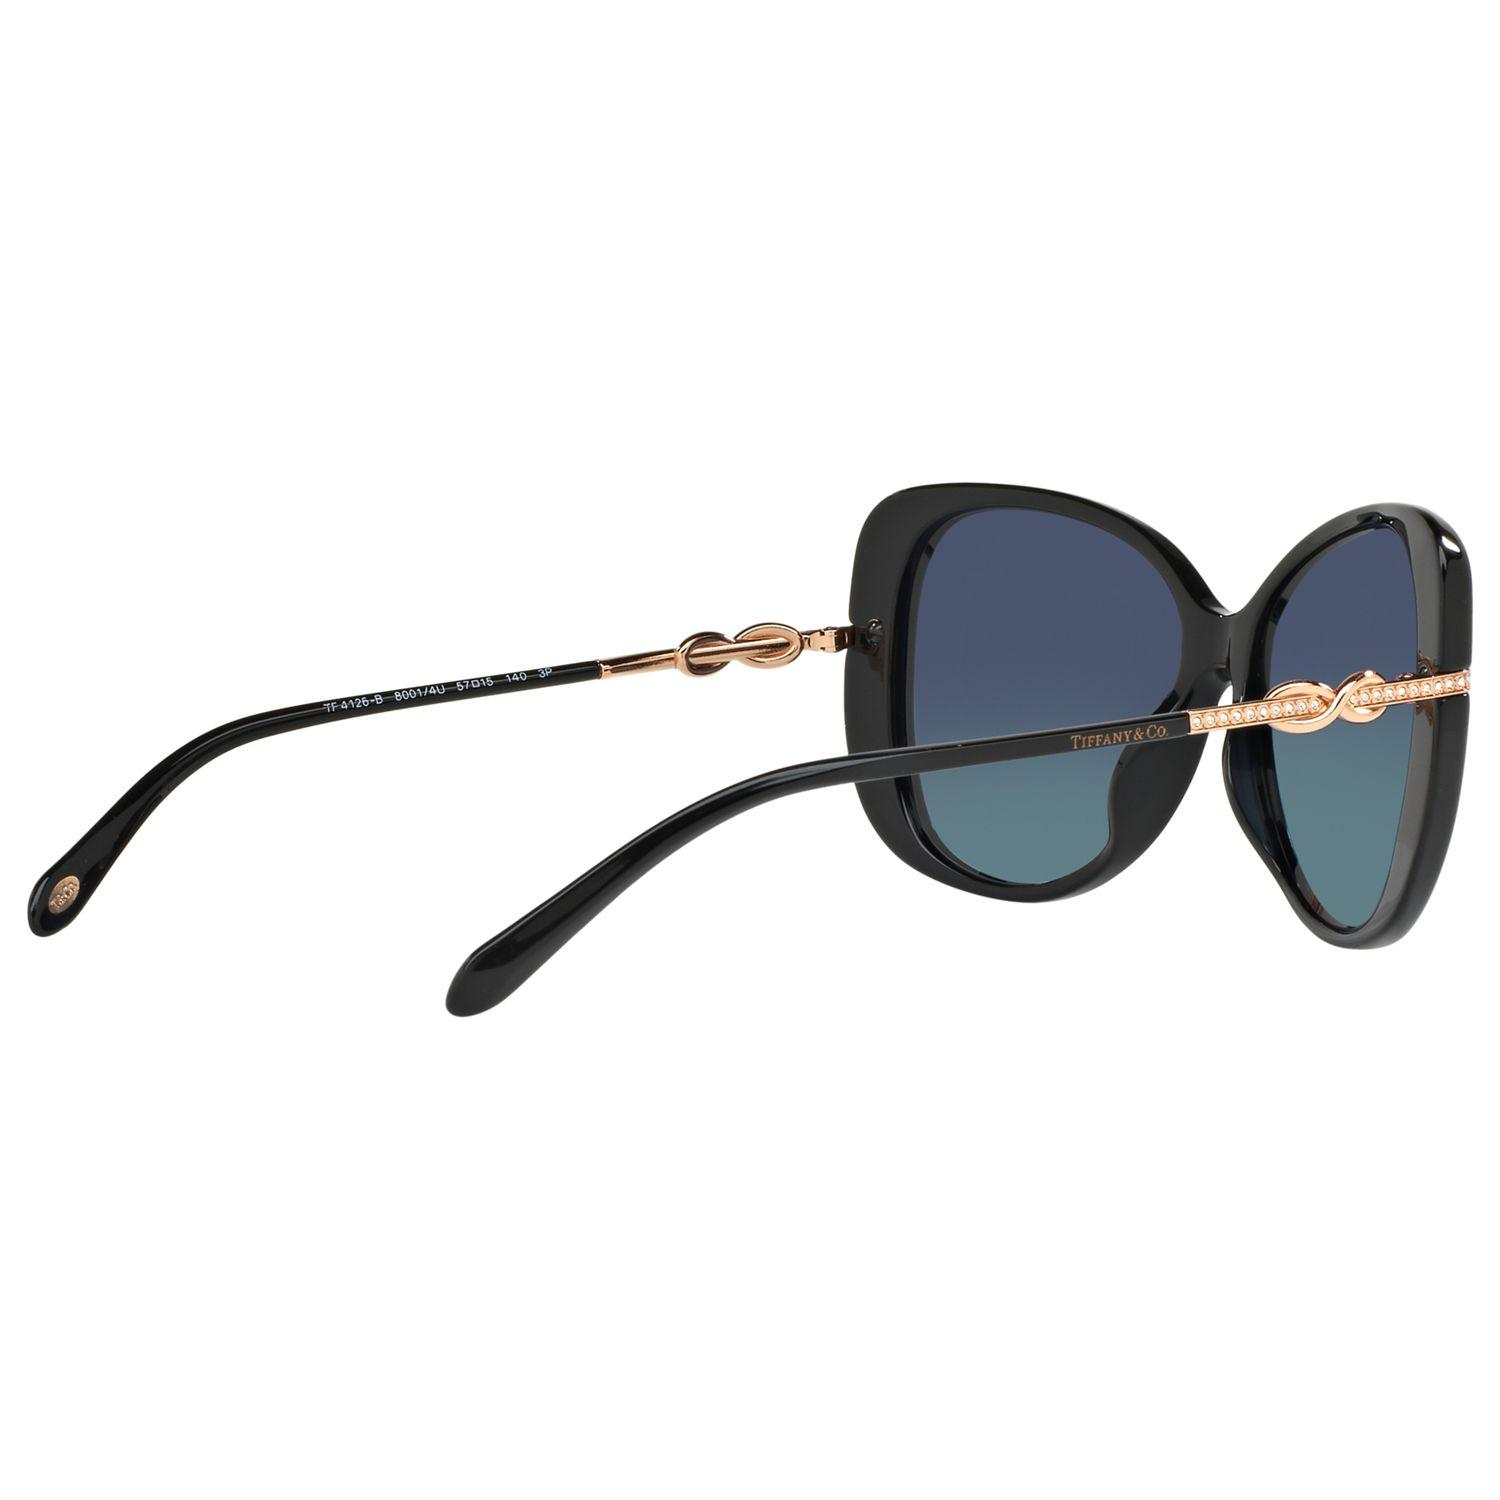 4be2d854d78c Tiffany   Co. Tf4126b Polarised Embellished Cat s Eye Sunglasses in ...